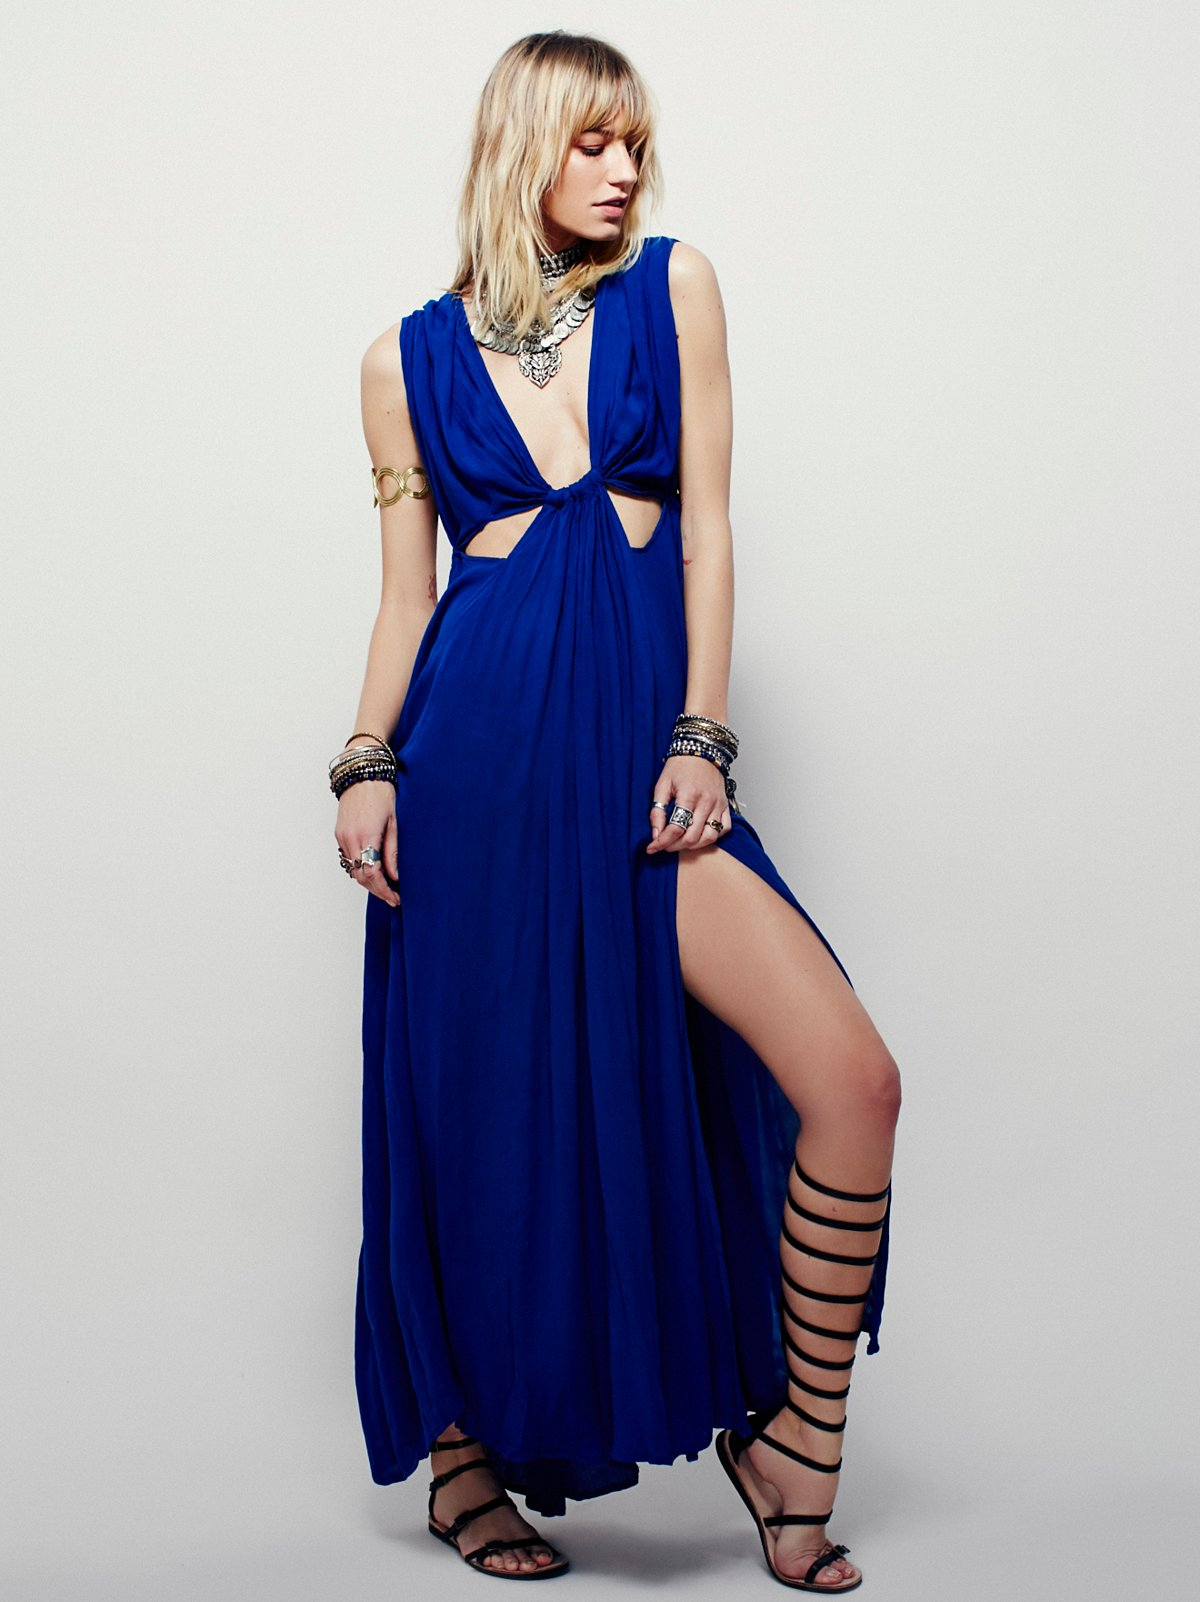 Got My Eyes on You Maxi Dress